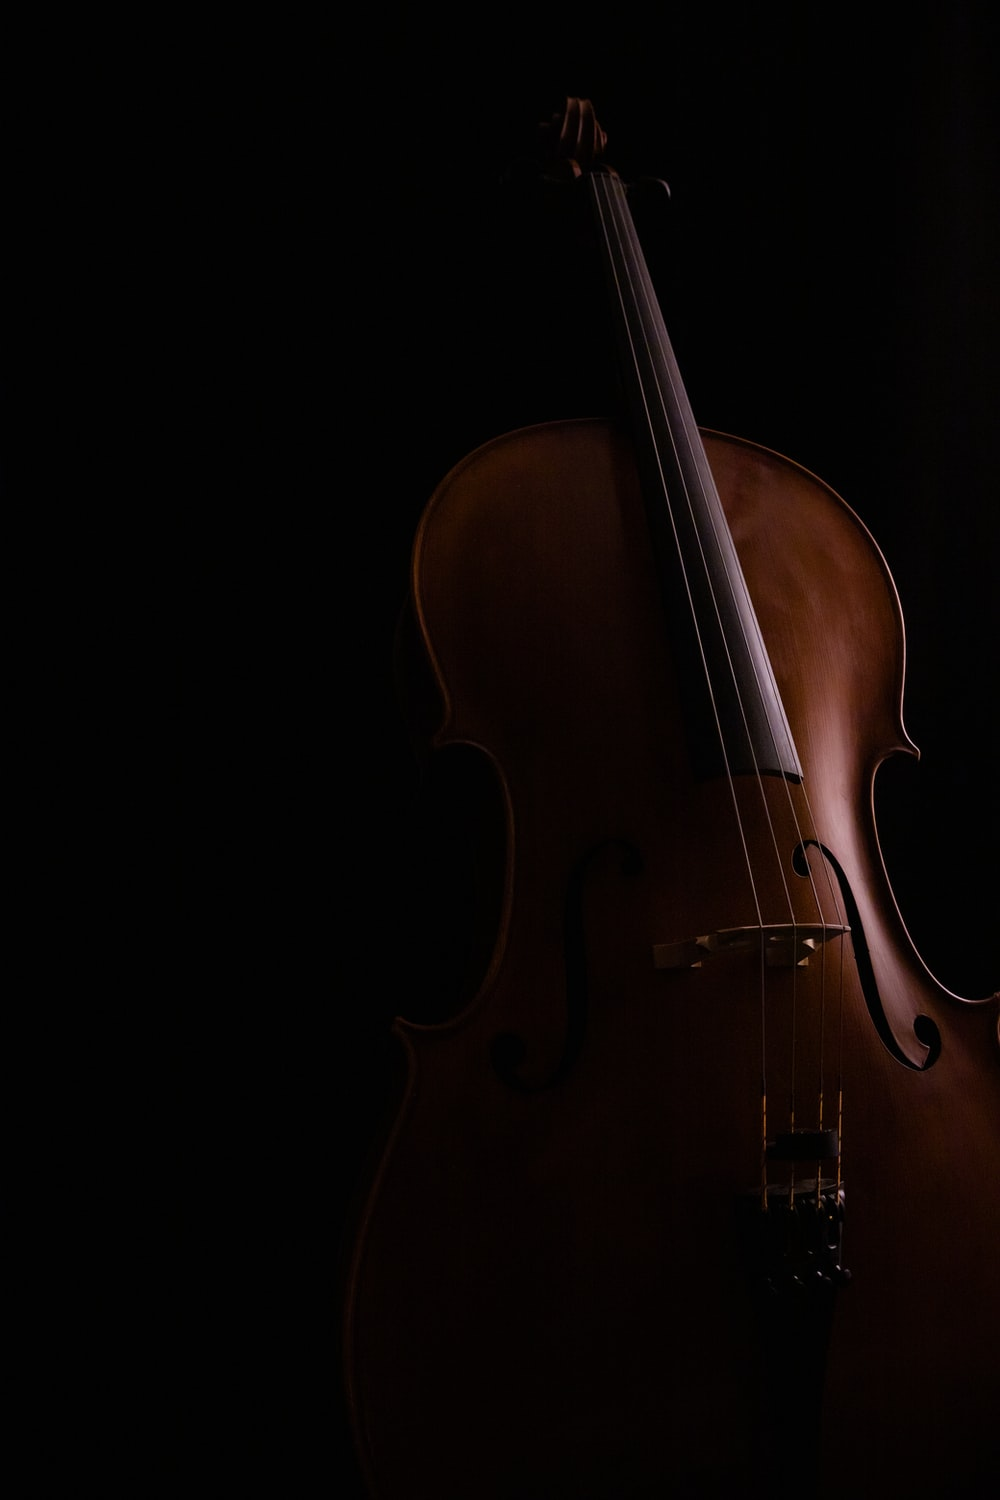 brown violin with black background